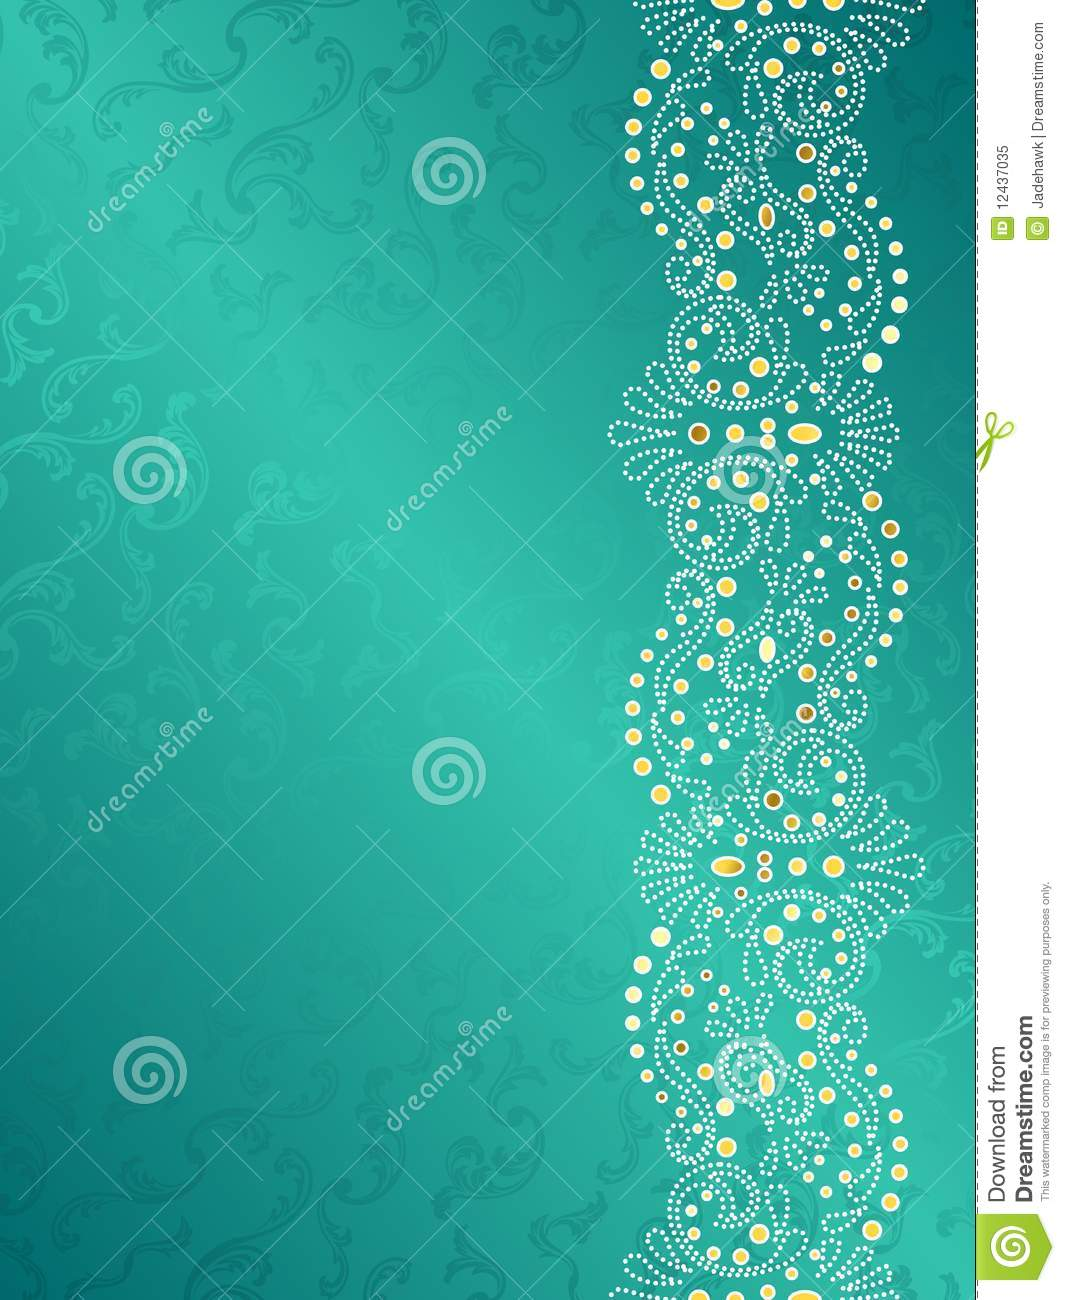 Turquoise background with delicate white margin